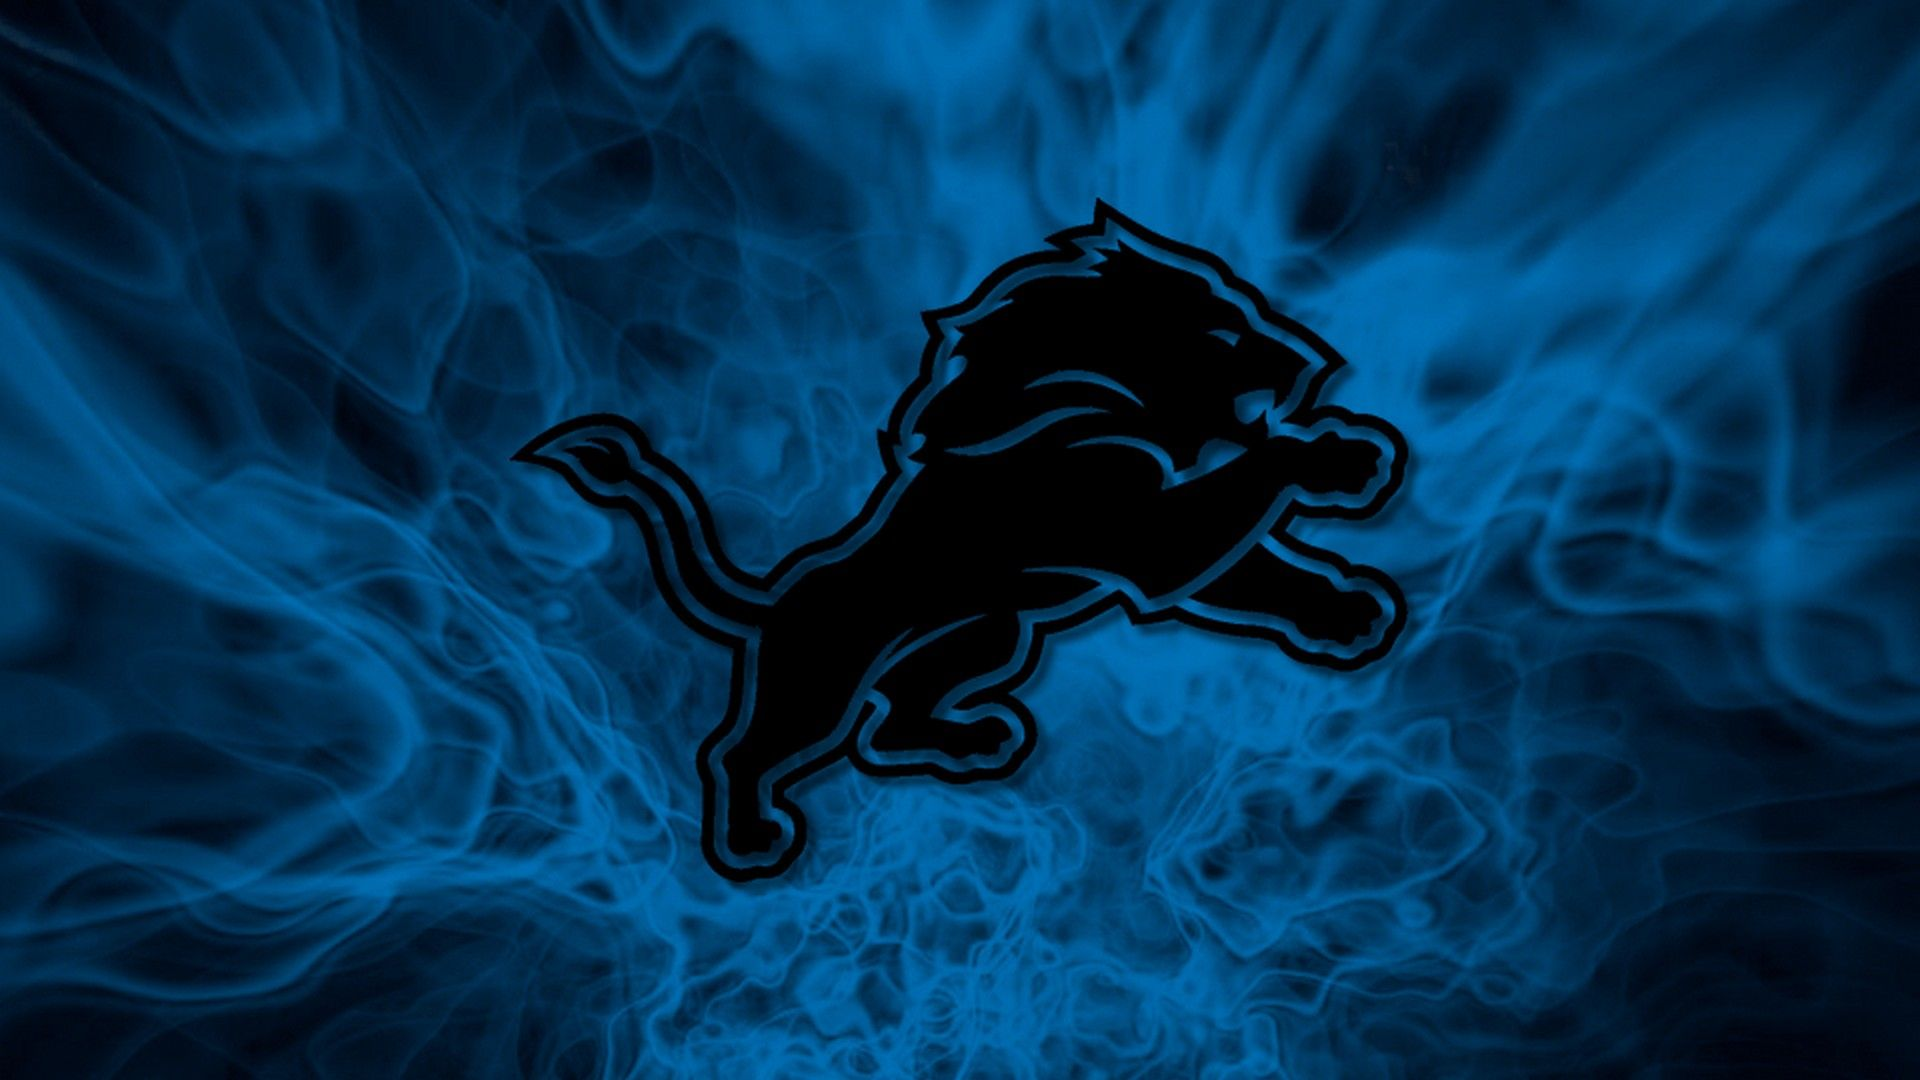 Detroit Lions Desktop Wallpaper is best high definition wallpaper 2018. You can make this wallpaper for your Mac or Windows Desktop Background, iPhone, ...